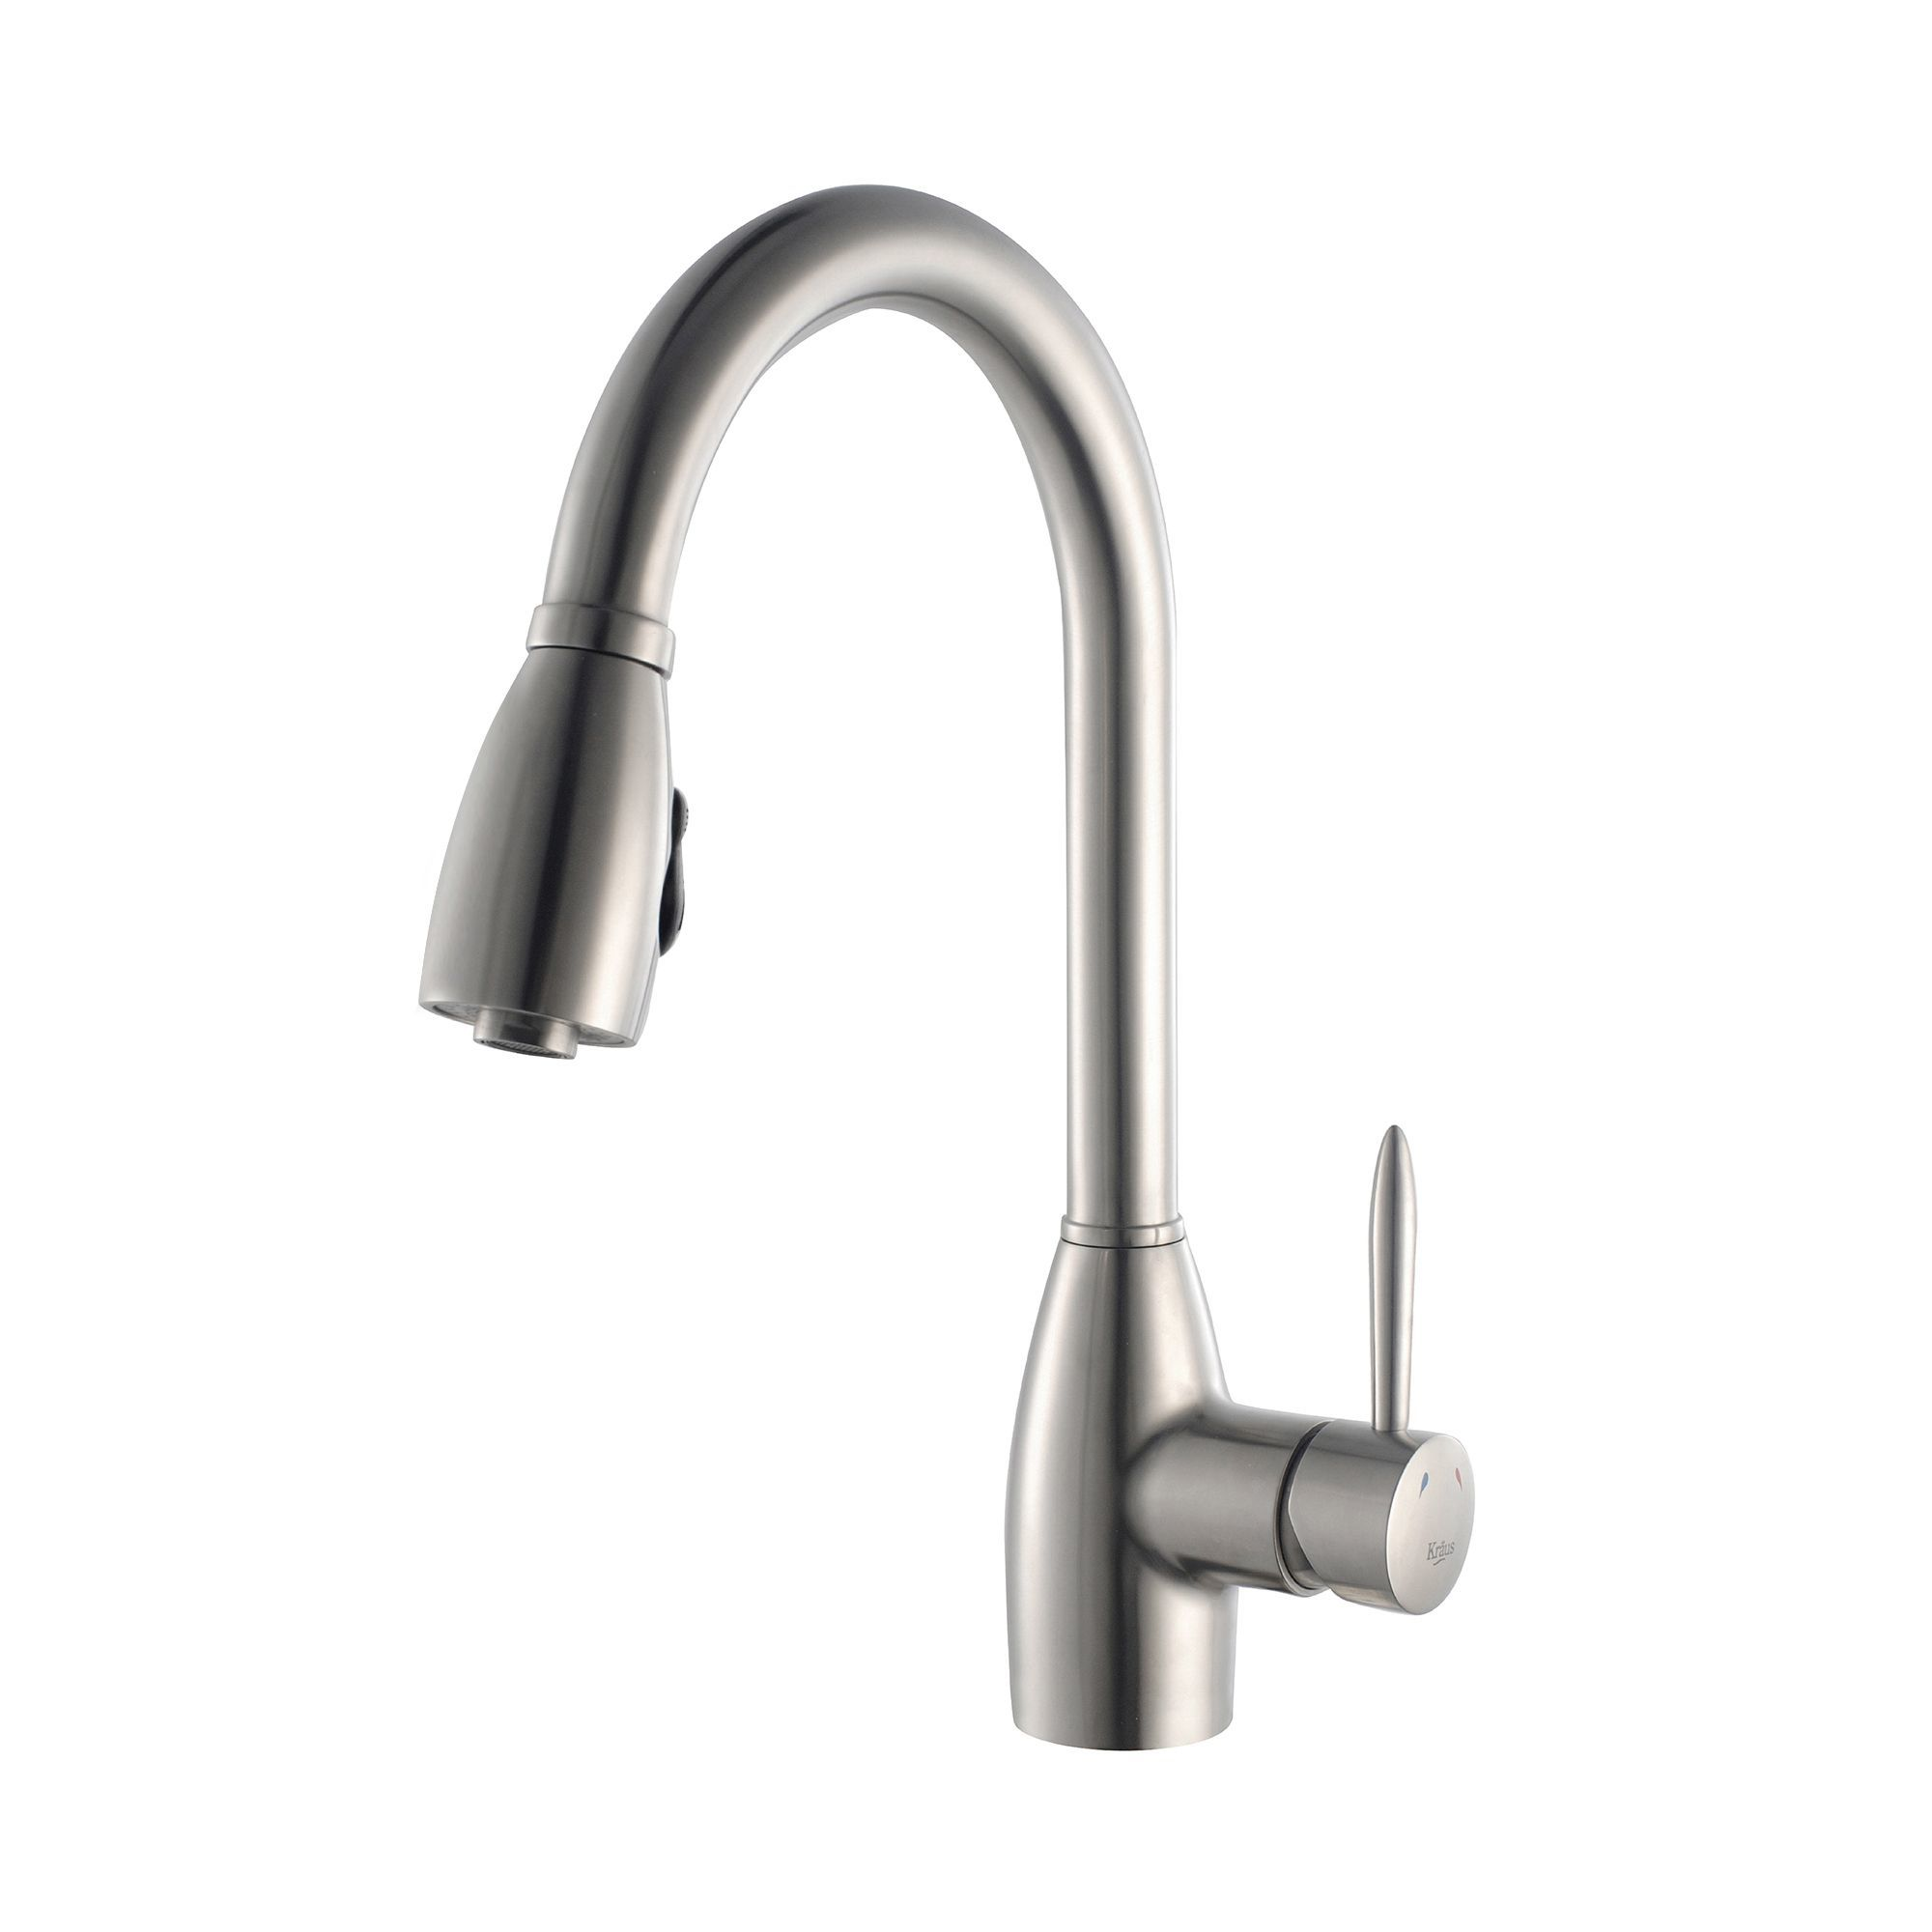 Kraus KPF-2130 Stainless Steel Pullout Spray Kitchen Faucet with ...